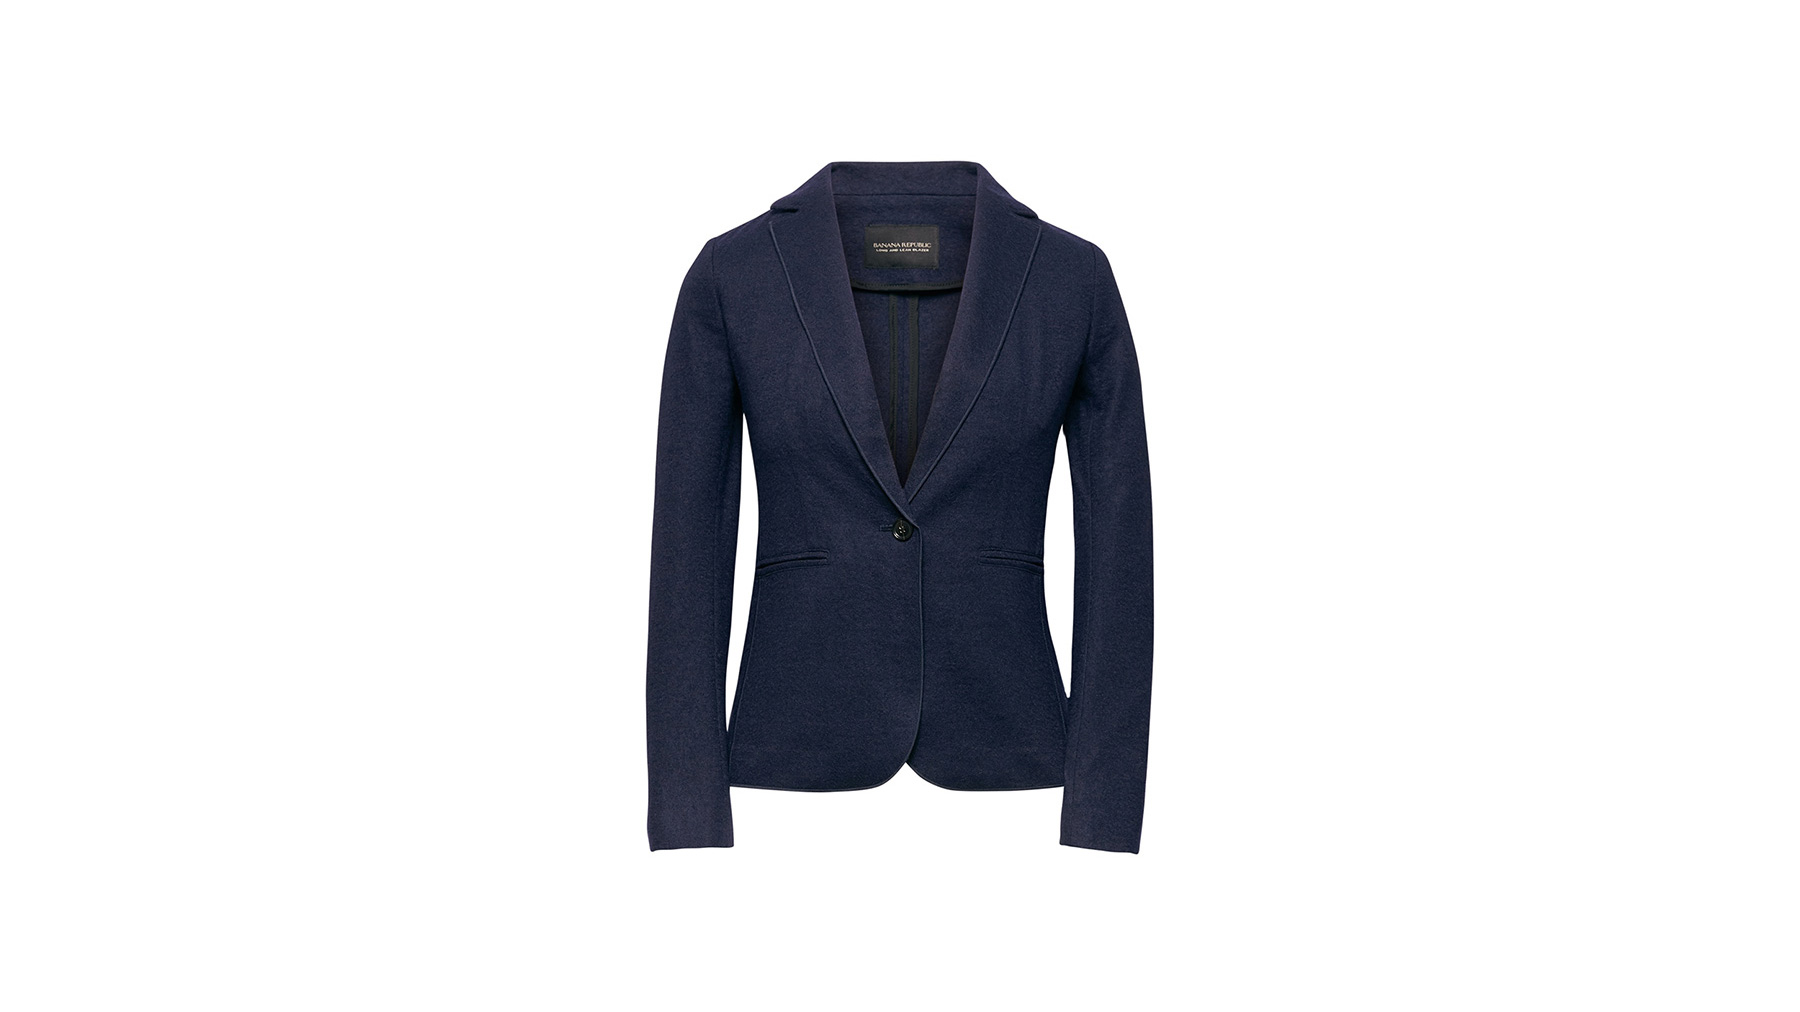 Navy Blazer Like Meghan Markle's From Banana Republic